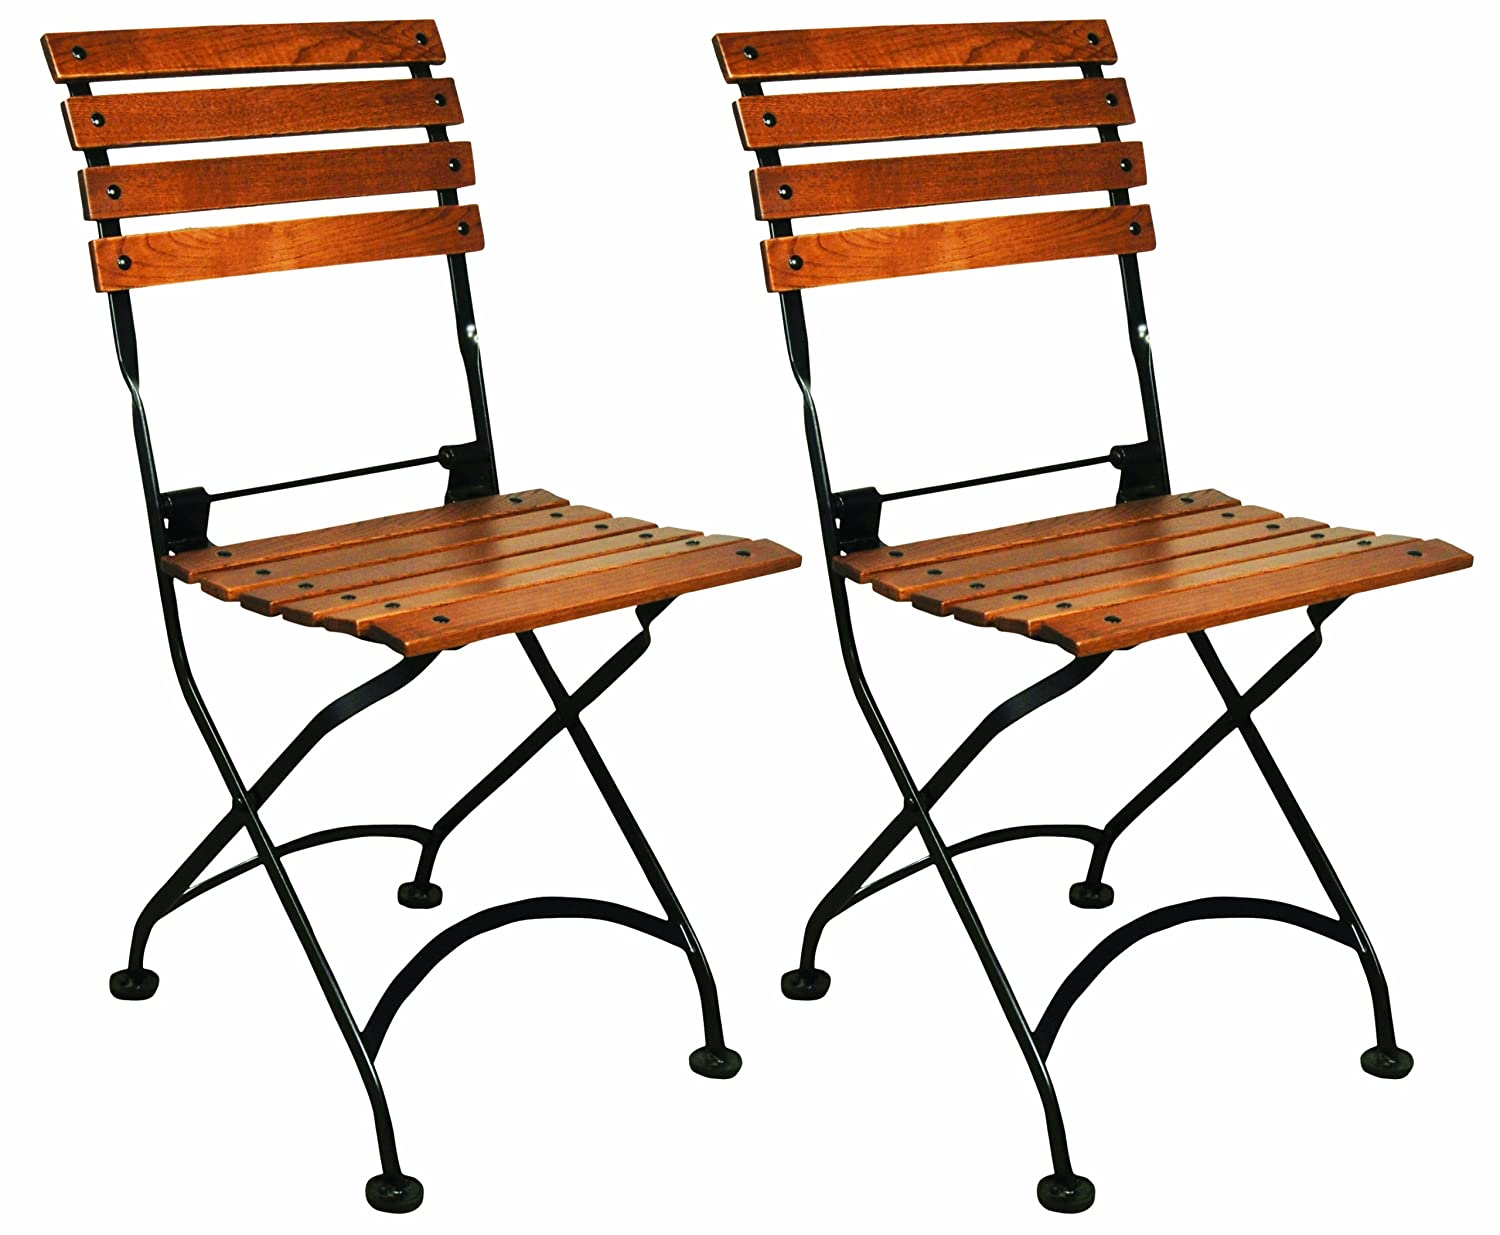 Mobel Designhaus French Caf Bistro Folding Side Chair, Jet Black Frame, European Chestnut Wood Slats with Walnut Stain Pack of 2